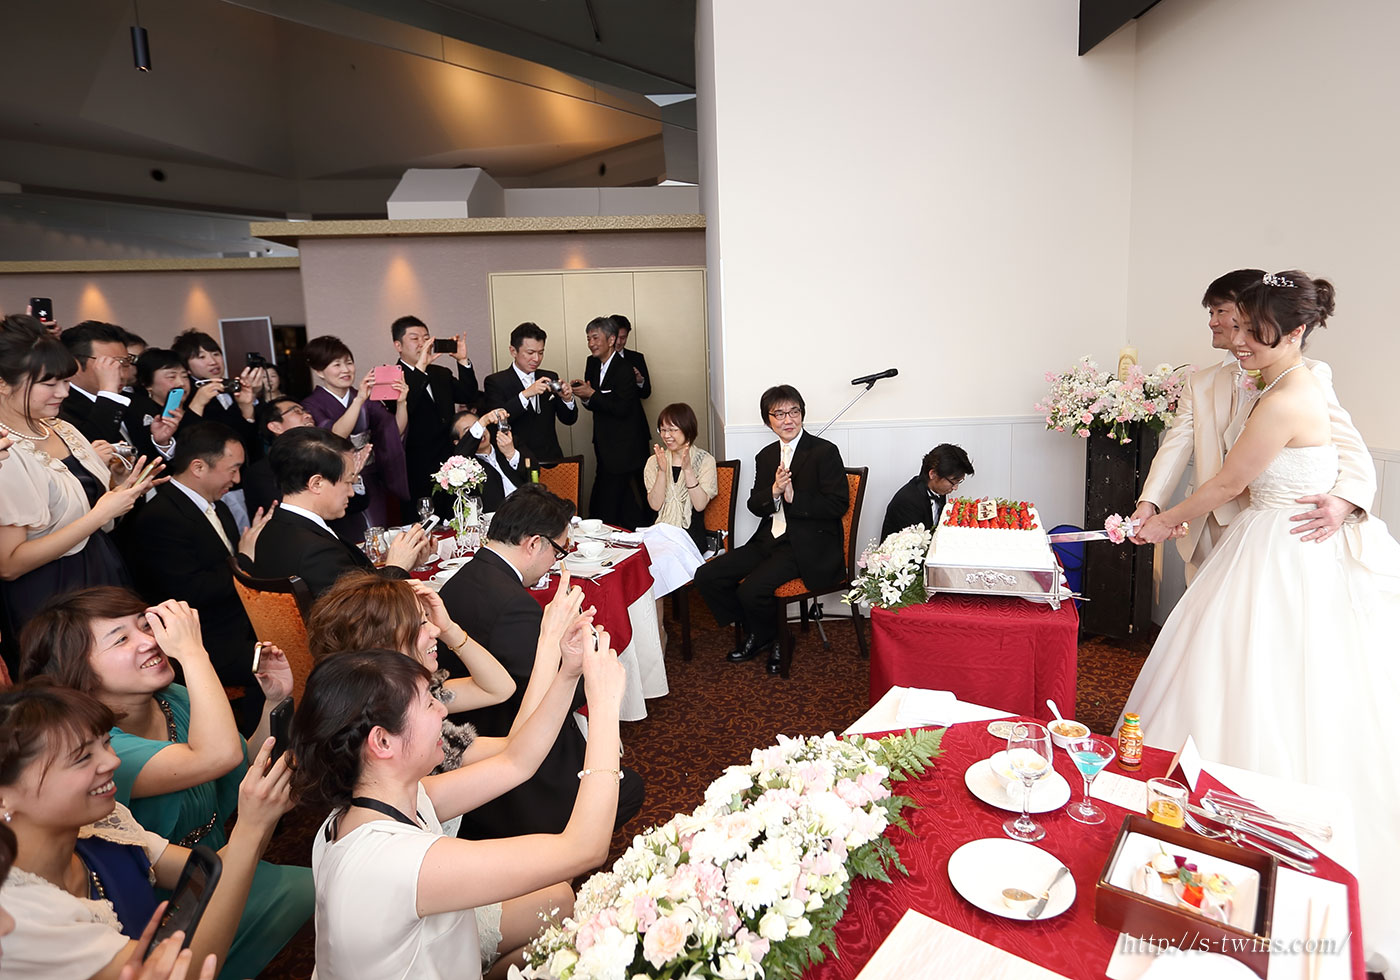 16mar26wedding_igarashitei_yui13